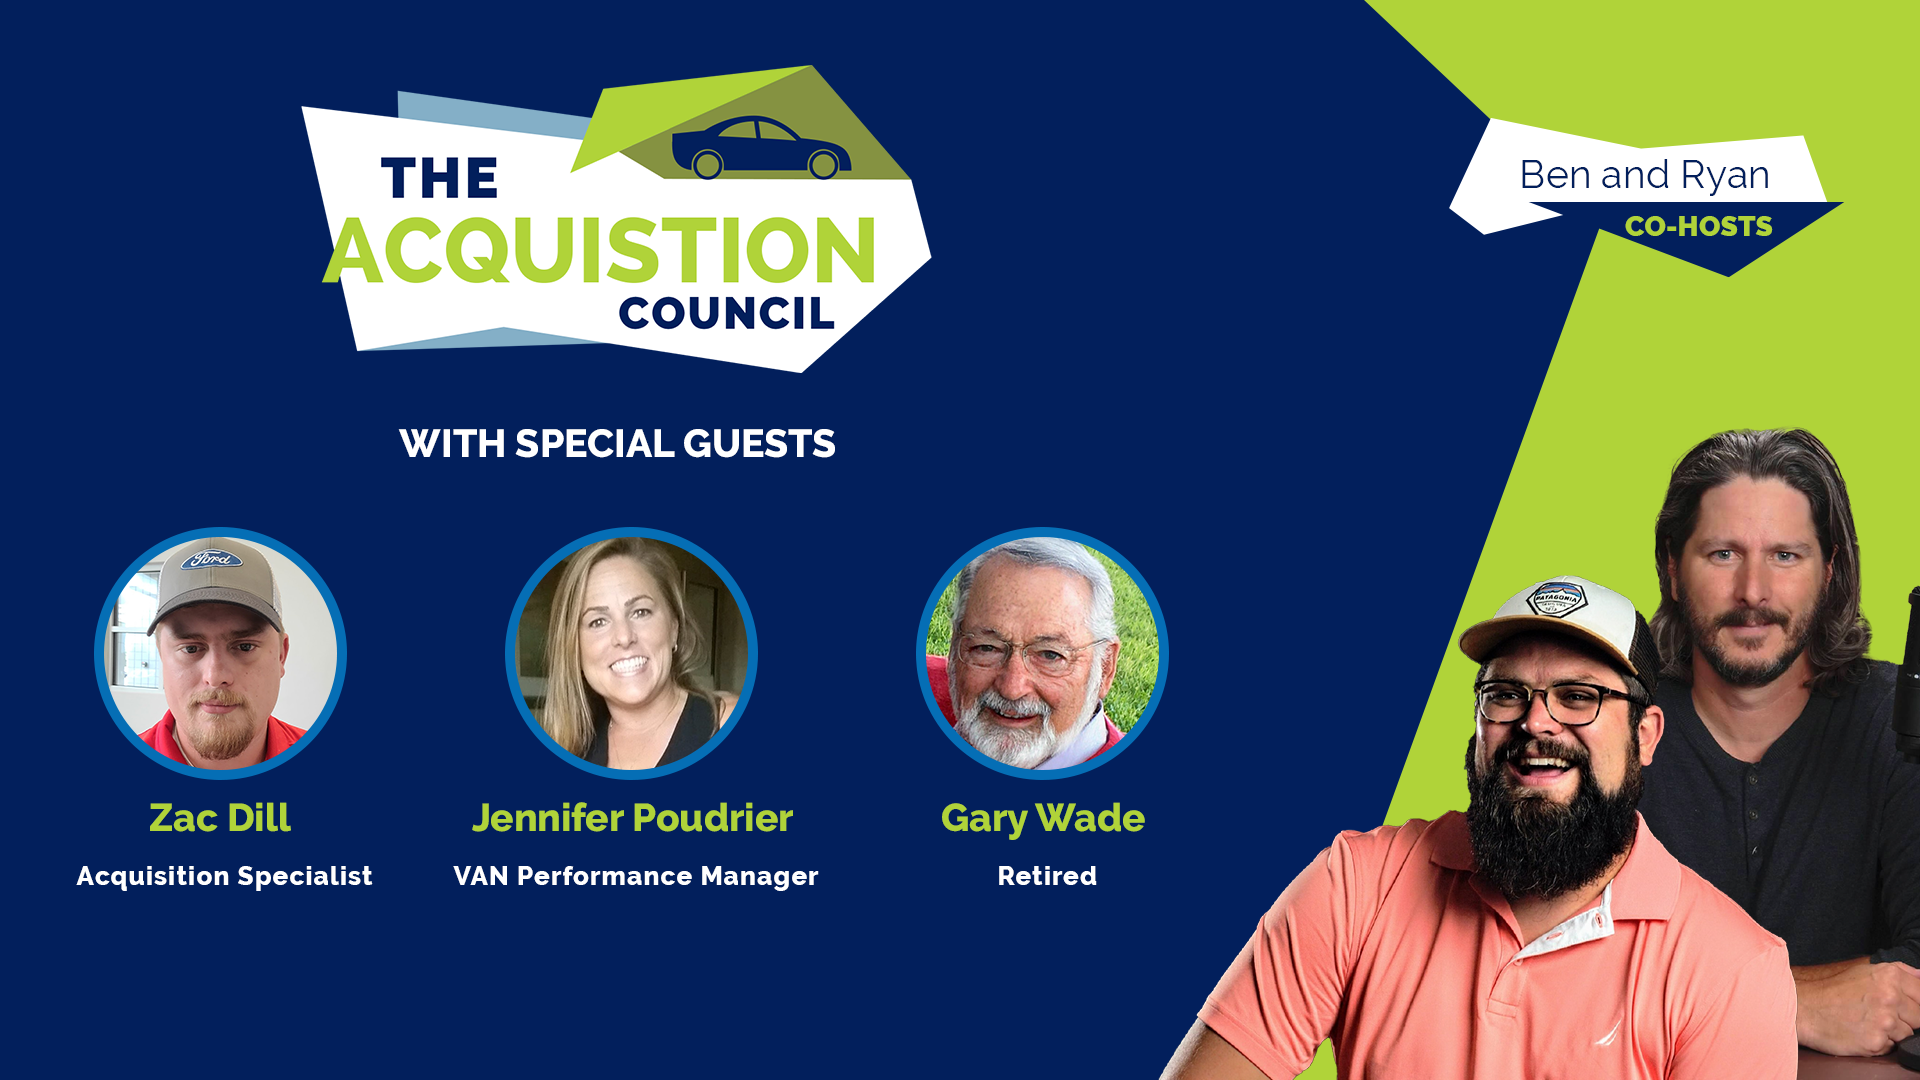 The Acquisition Council with Zac Dill, Jennifer Pourdrier, and Gary Wade